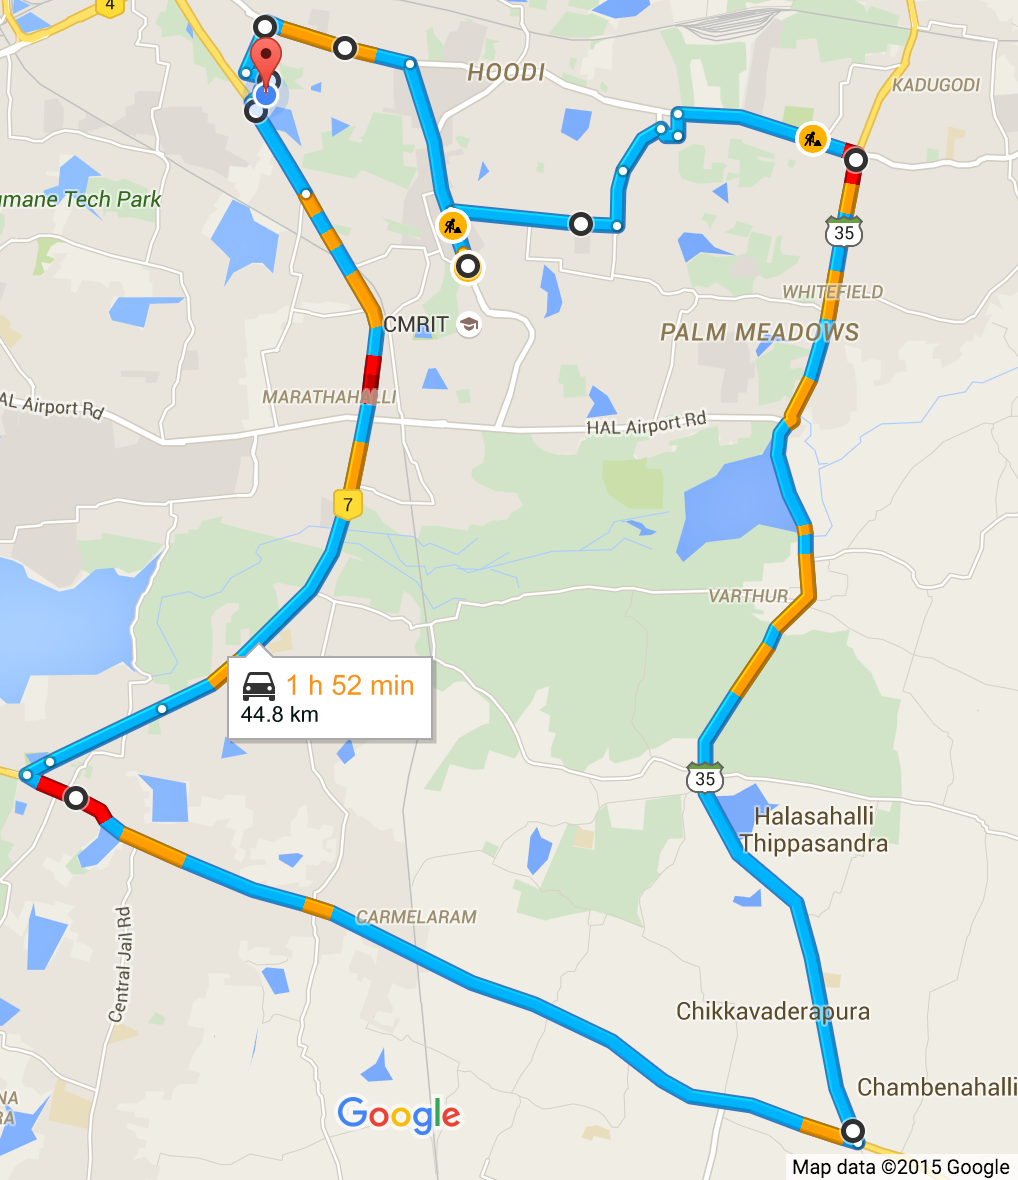 Route on Google Maps